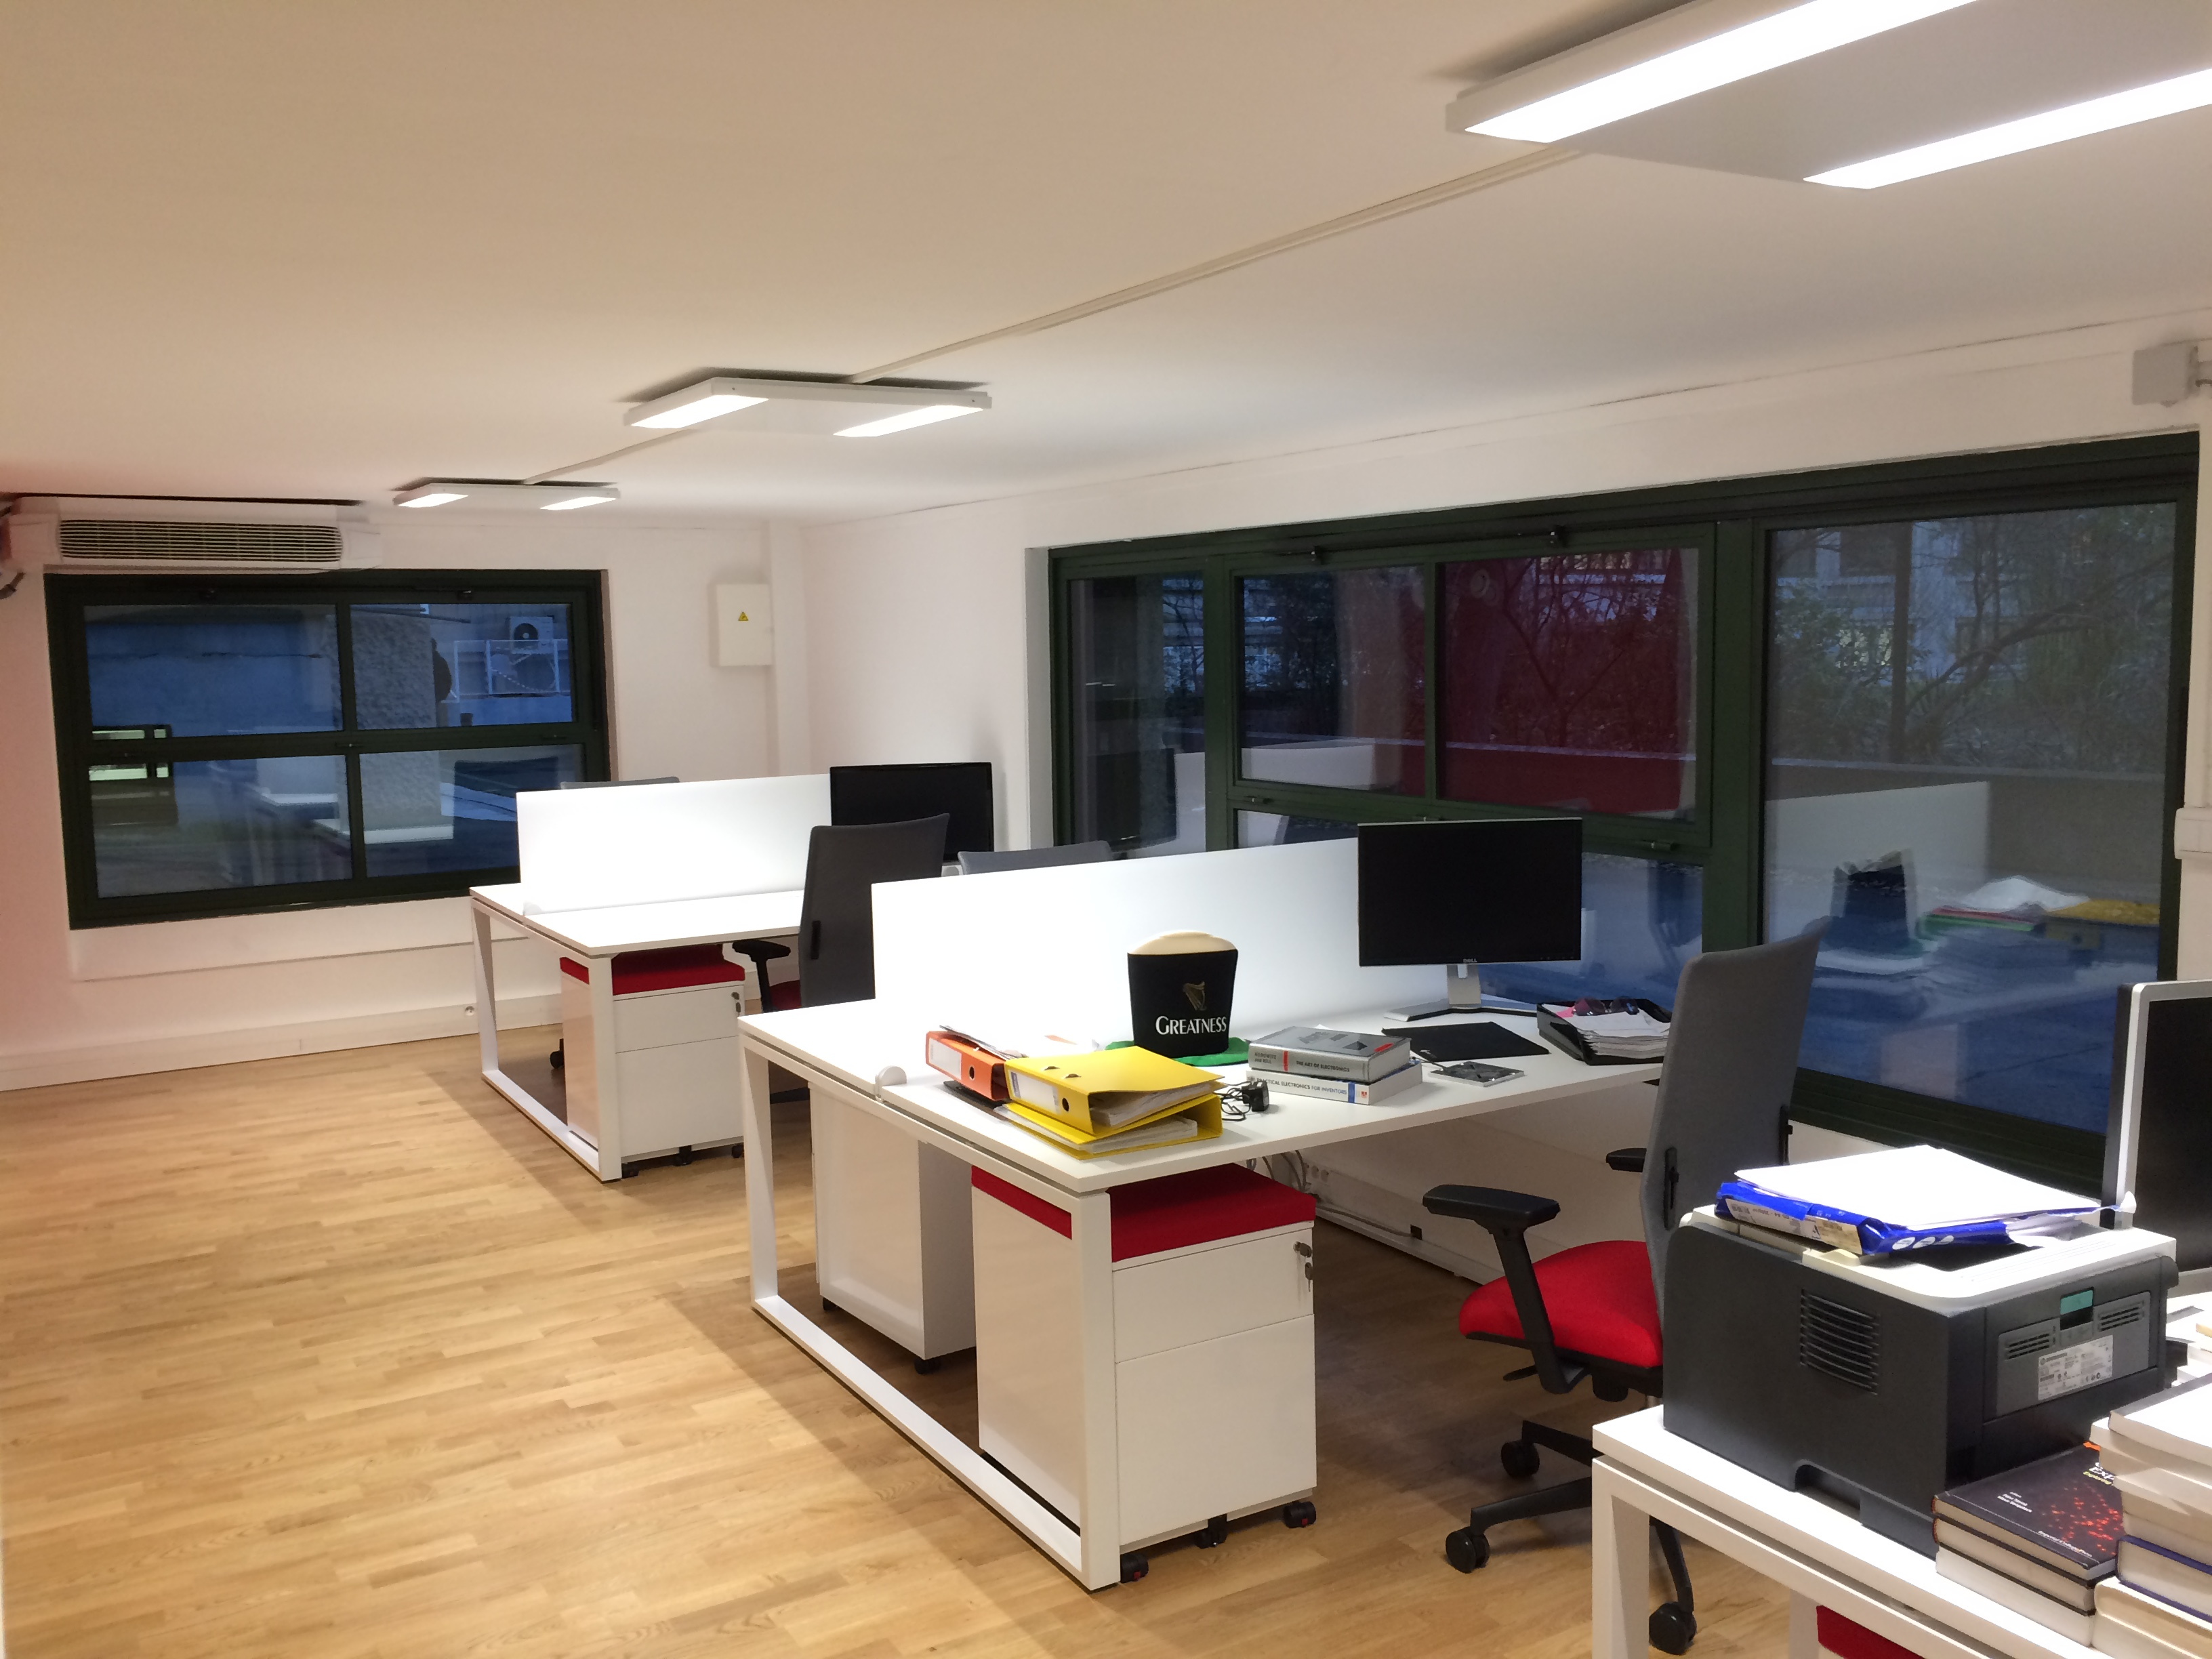 New open floor-plan office